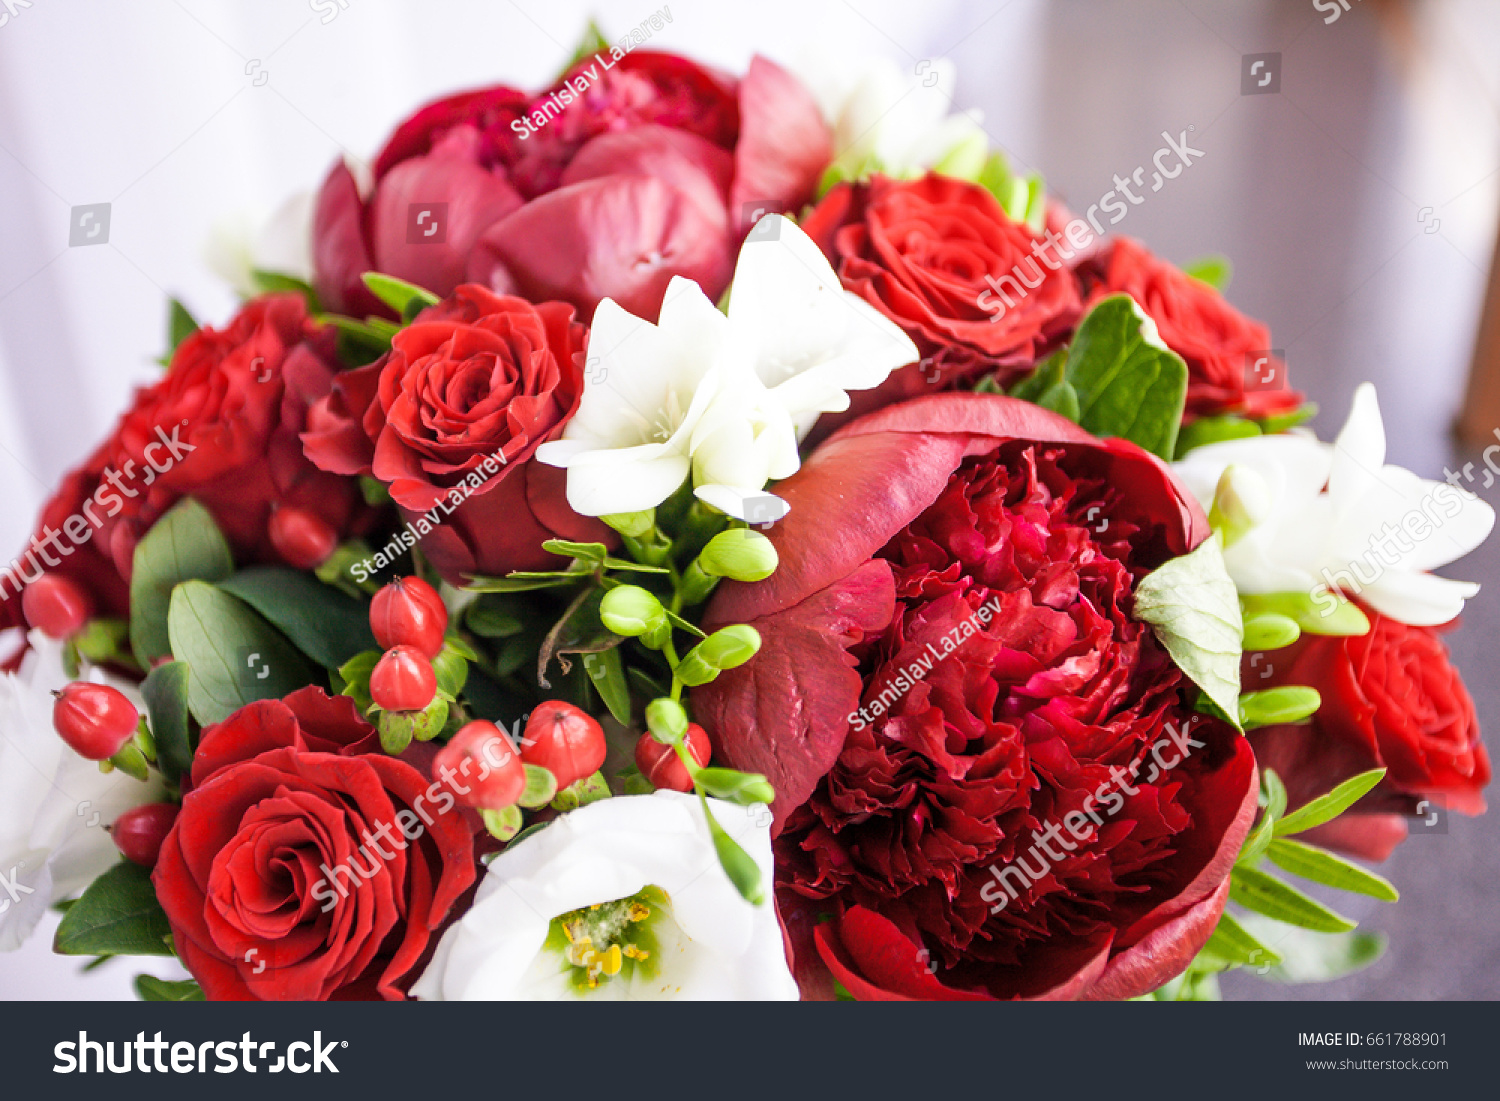 Bridal Bouquet Fresh Flowers Red Color Stock Photo (Royalty Free ...